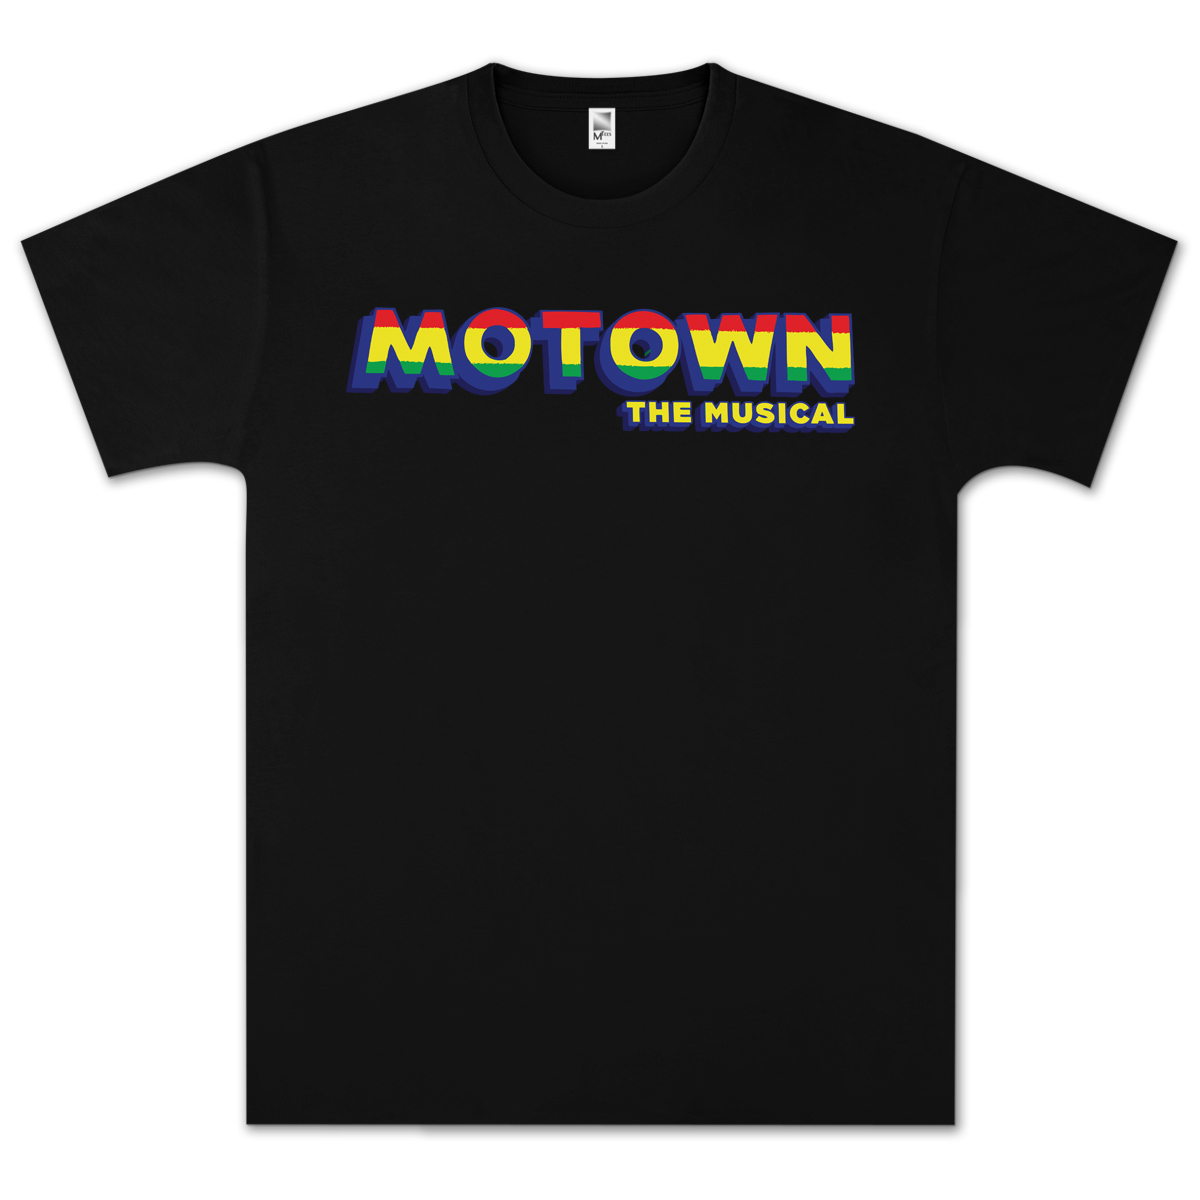 Motown The Musical Logo T Shirt Shop The Musictoday